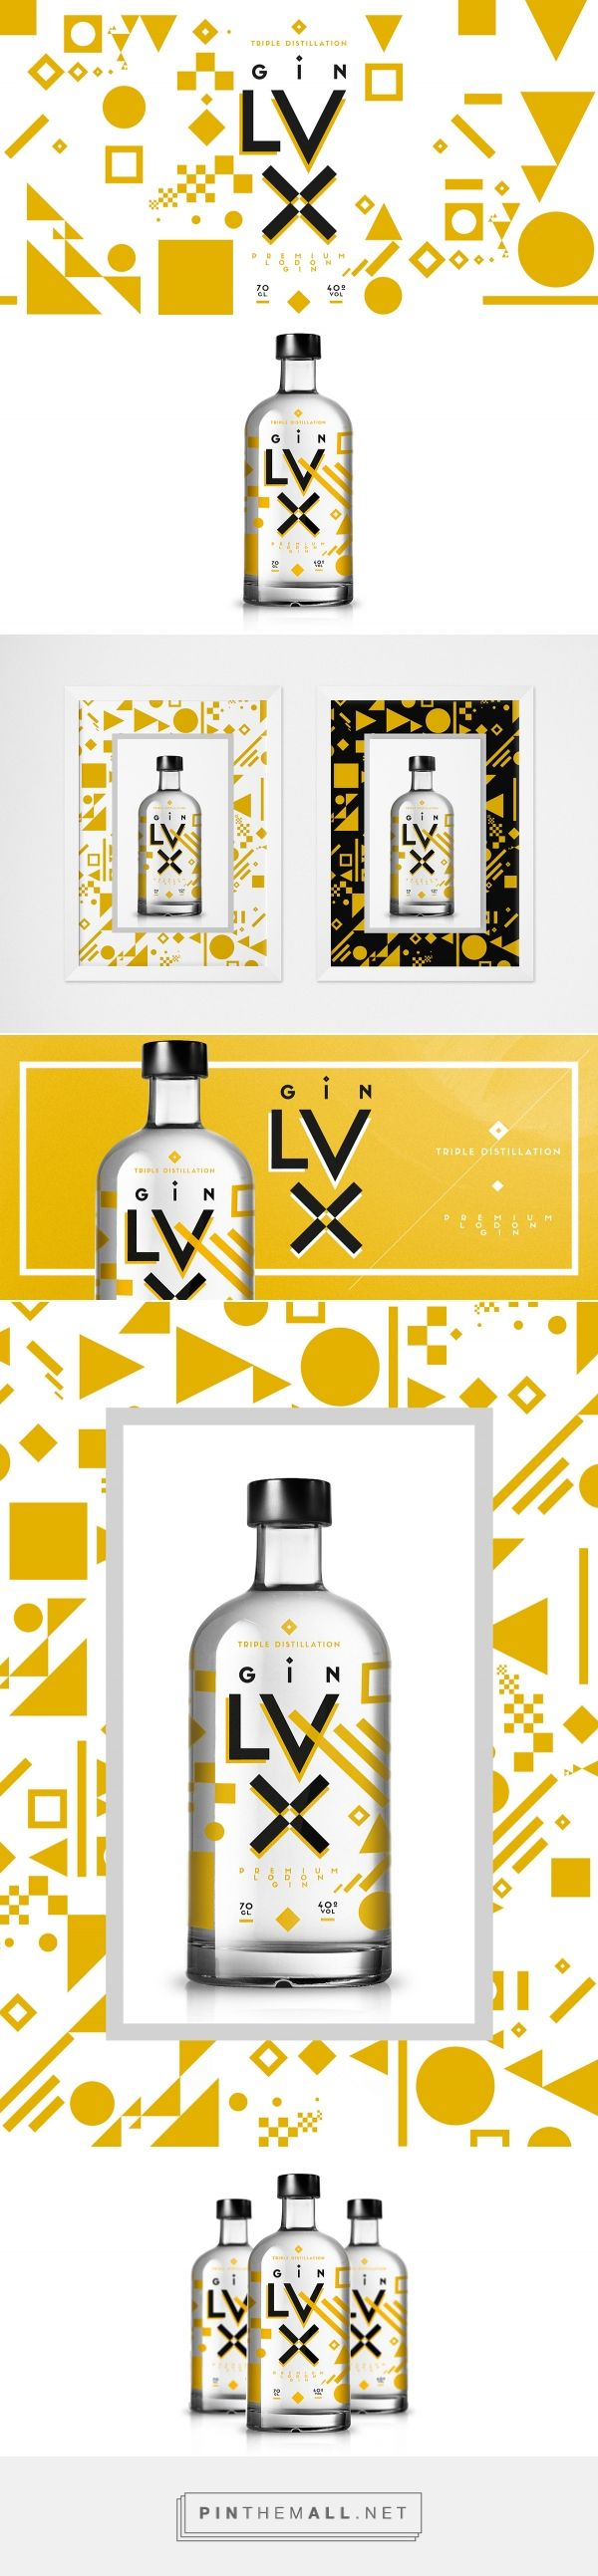 Lux Premium Gin Branding and Packaging by Homeland Studio | Fivestar Branding Agency – Design and Branding Agency & Curated Inspiration Gallery